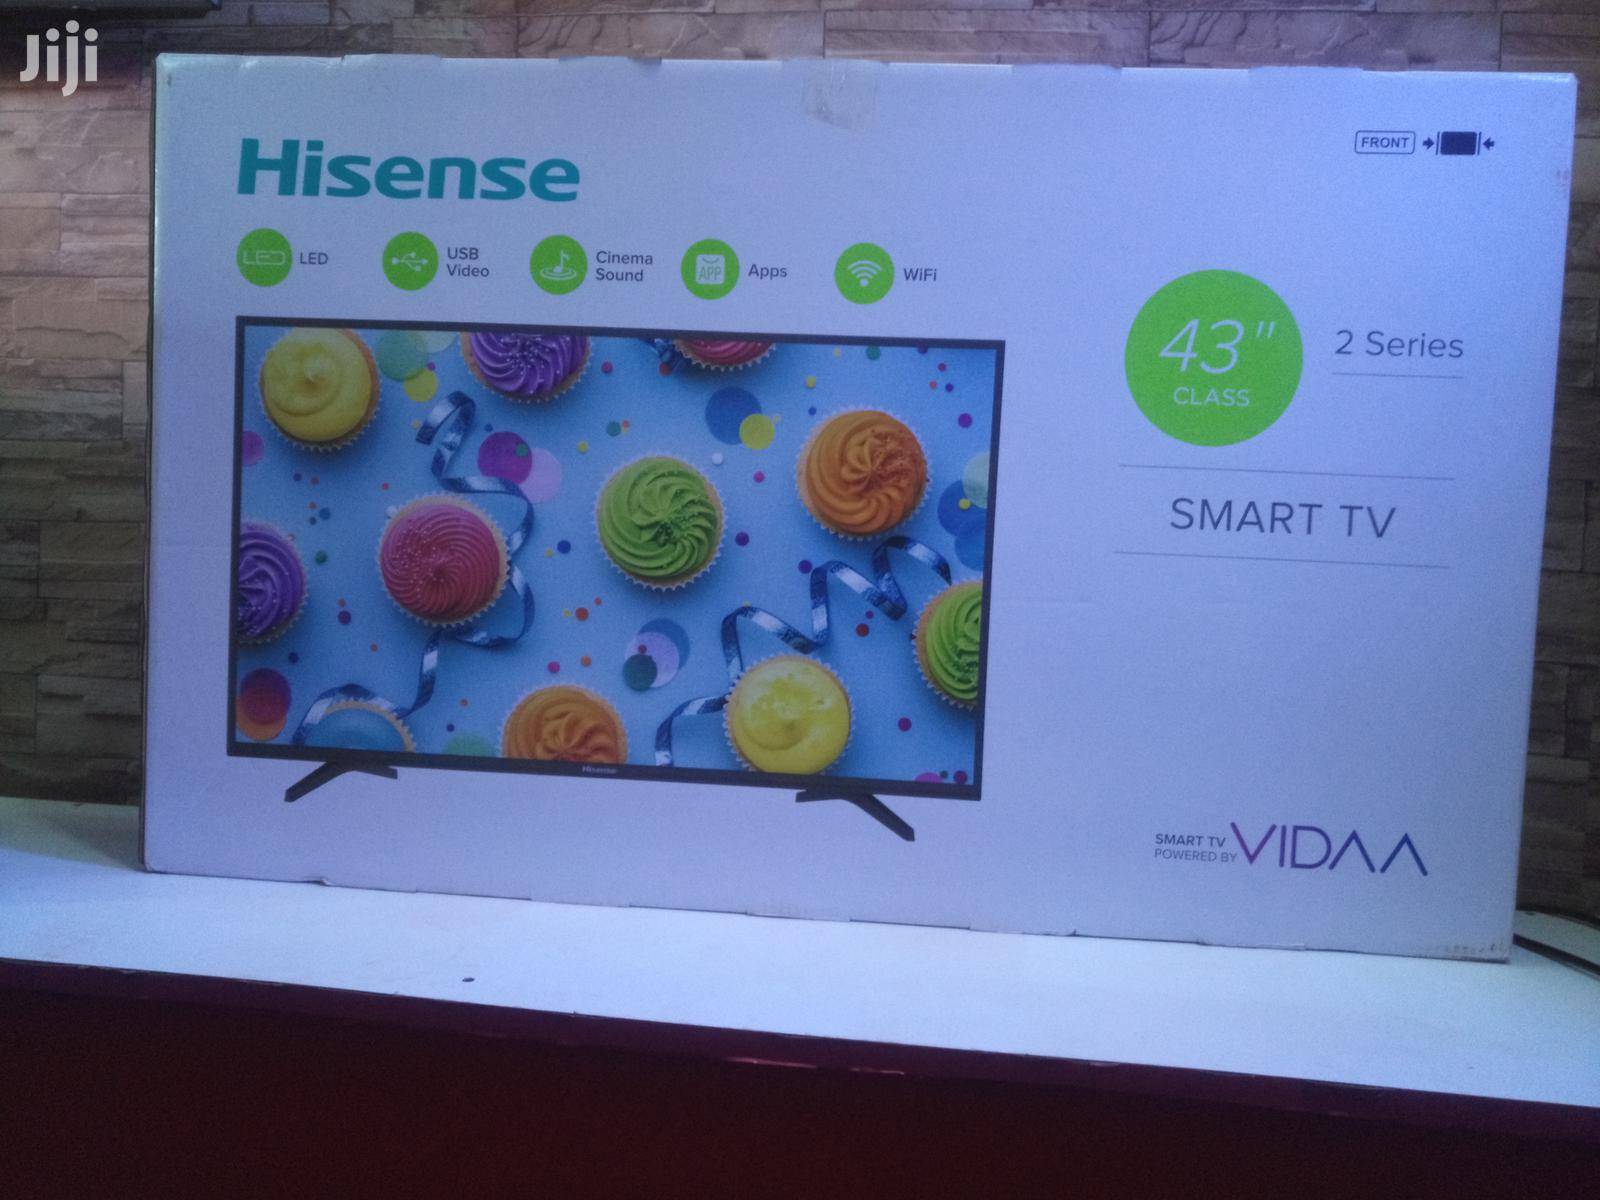 Hisense Smart Tv 43 Inches | TV & DVD Equipment for sale in Kampala, Central Region, Uganda